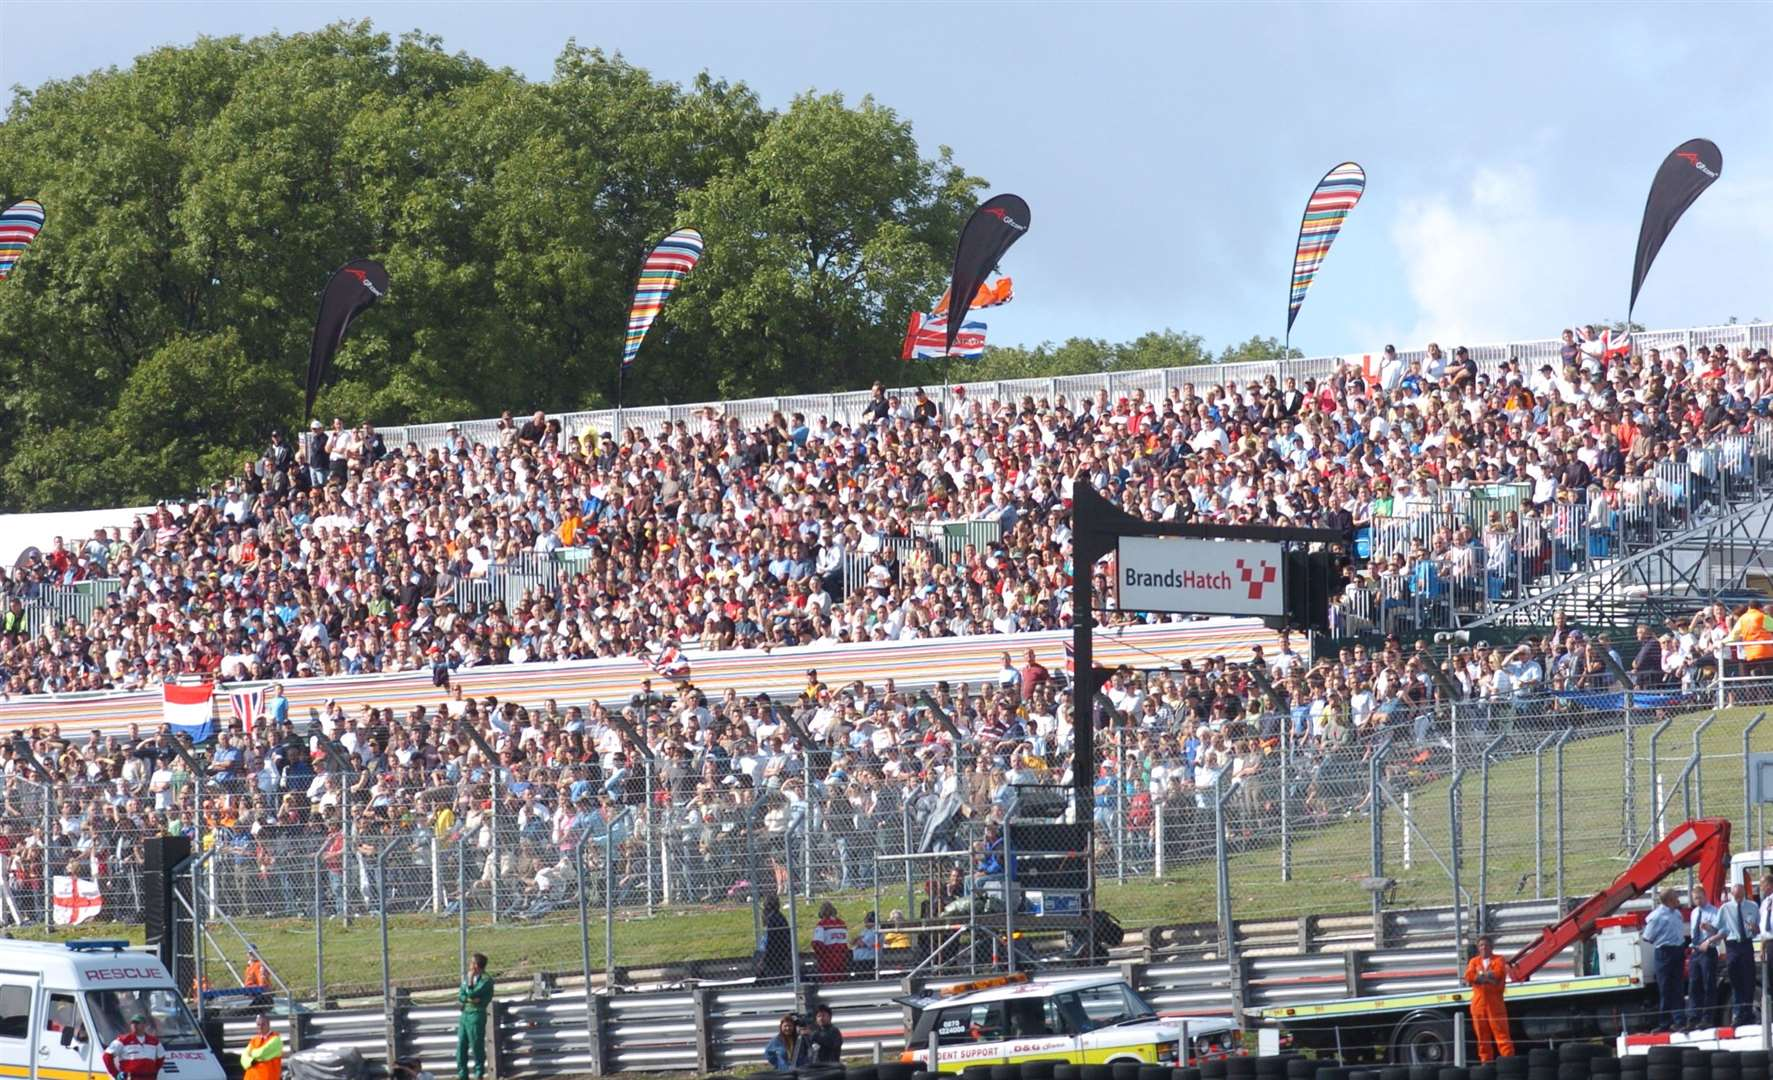 The first Brands event in 2005 attracted 72,000 people over the weekend – including 46,000 fans on the Sunday. Picture: Barry Goodwin